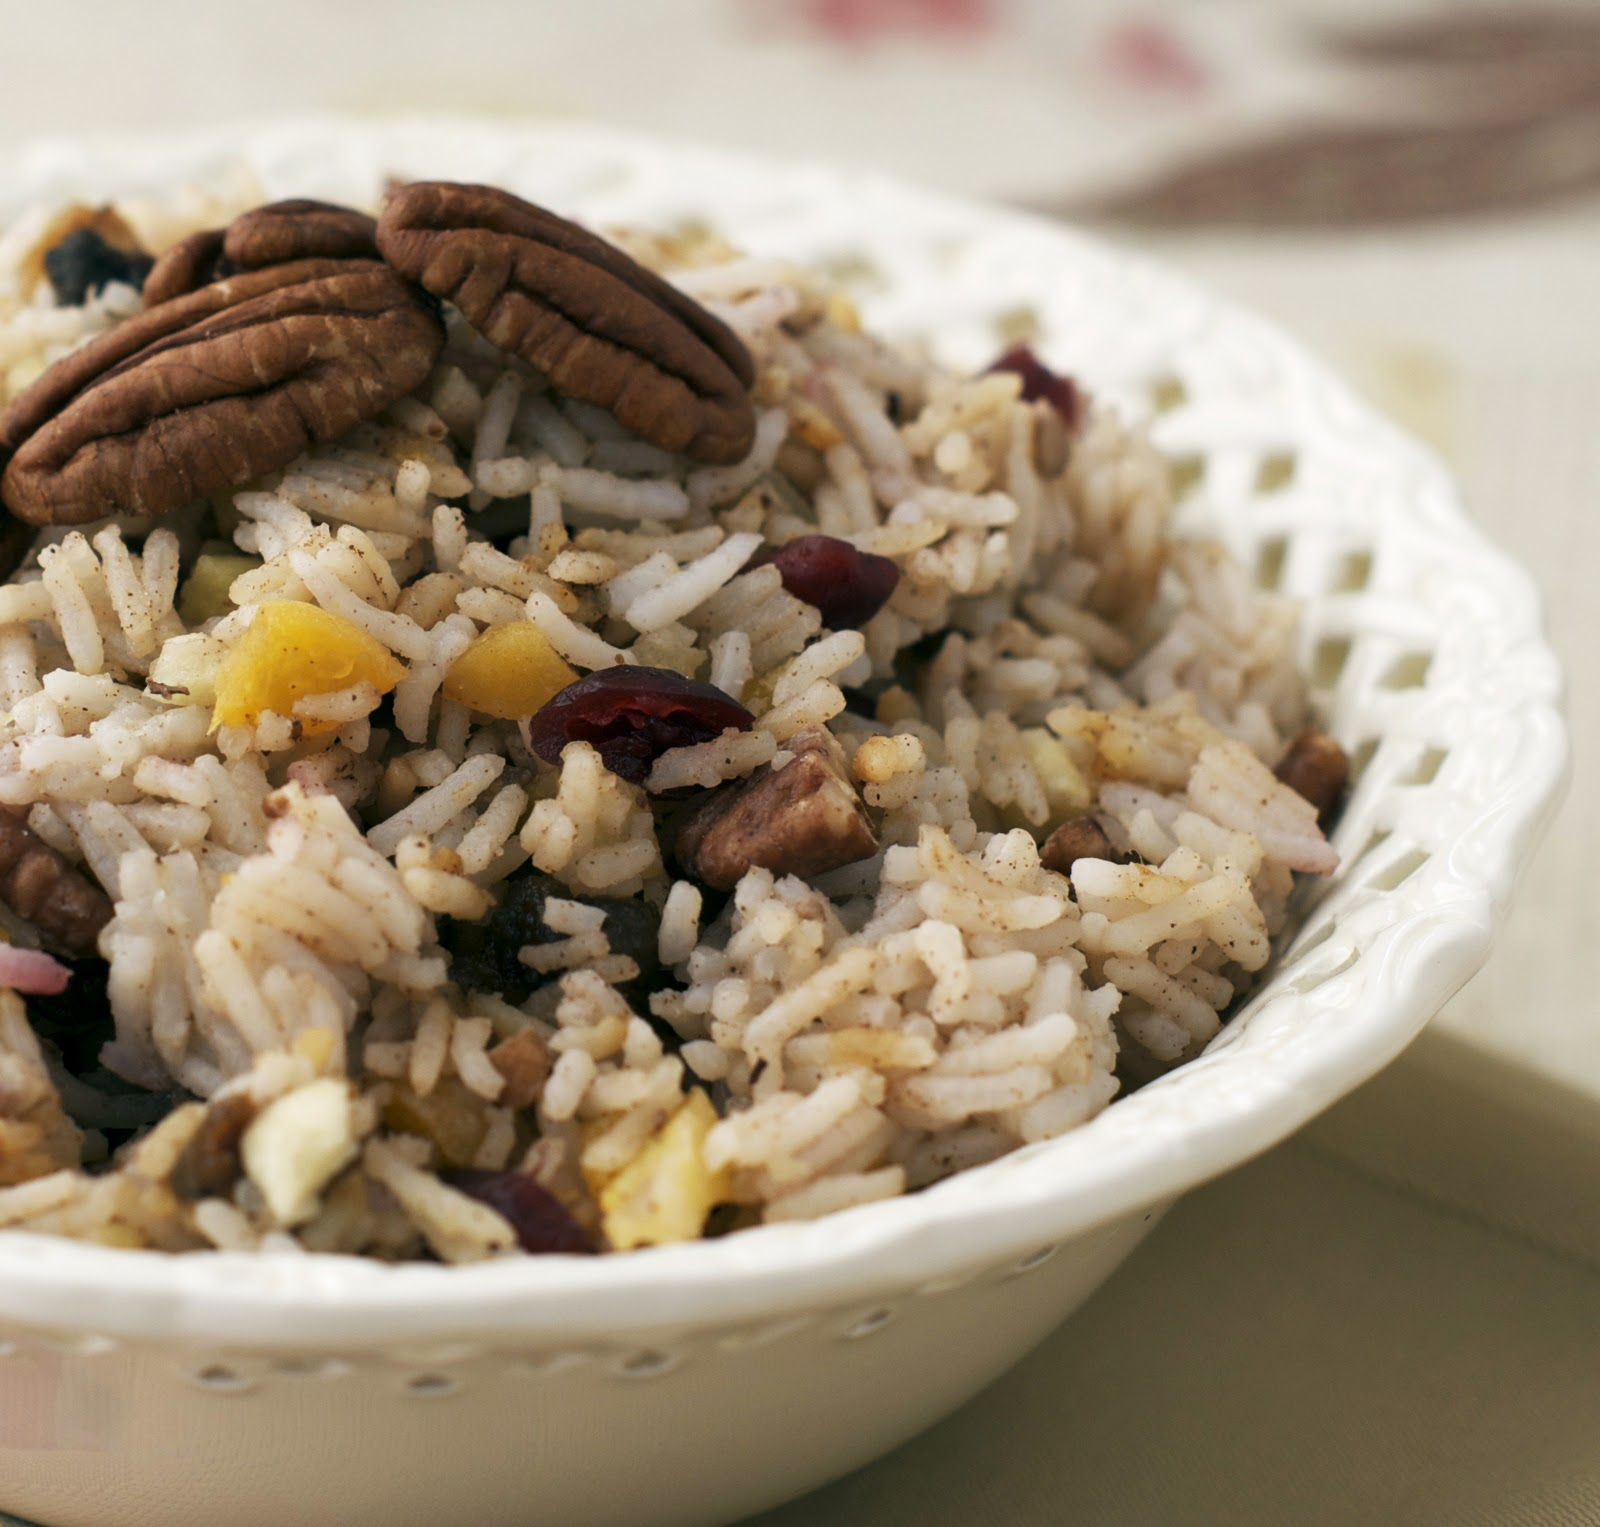 Festive Rice with Fruit and Nuts